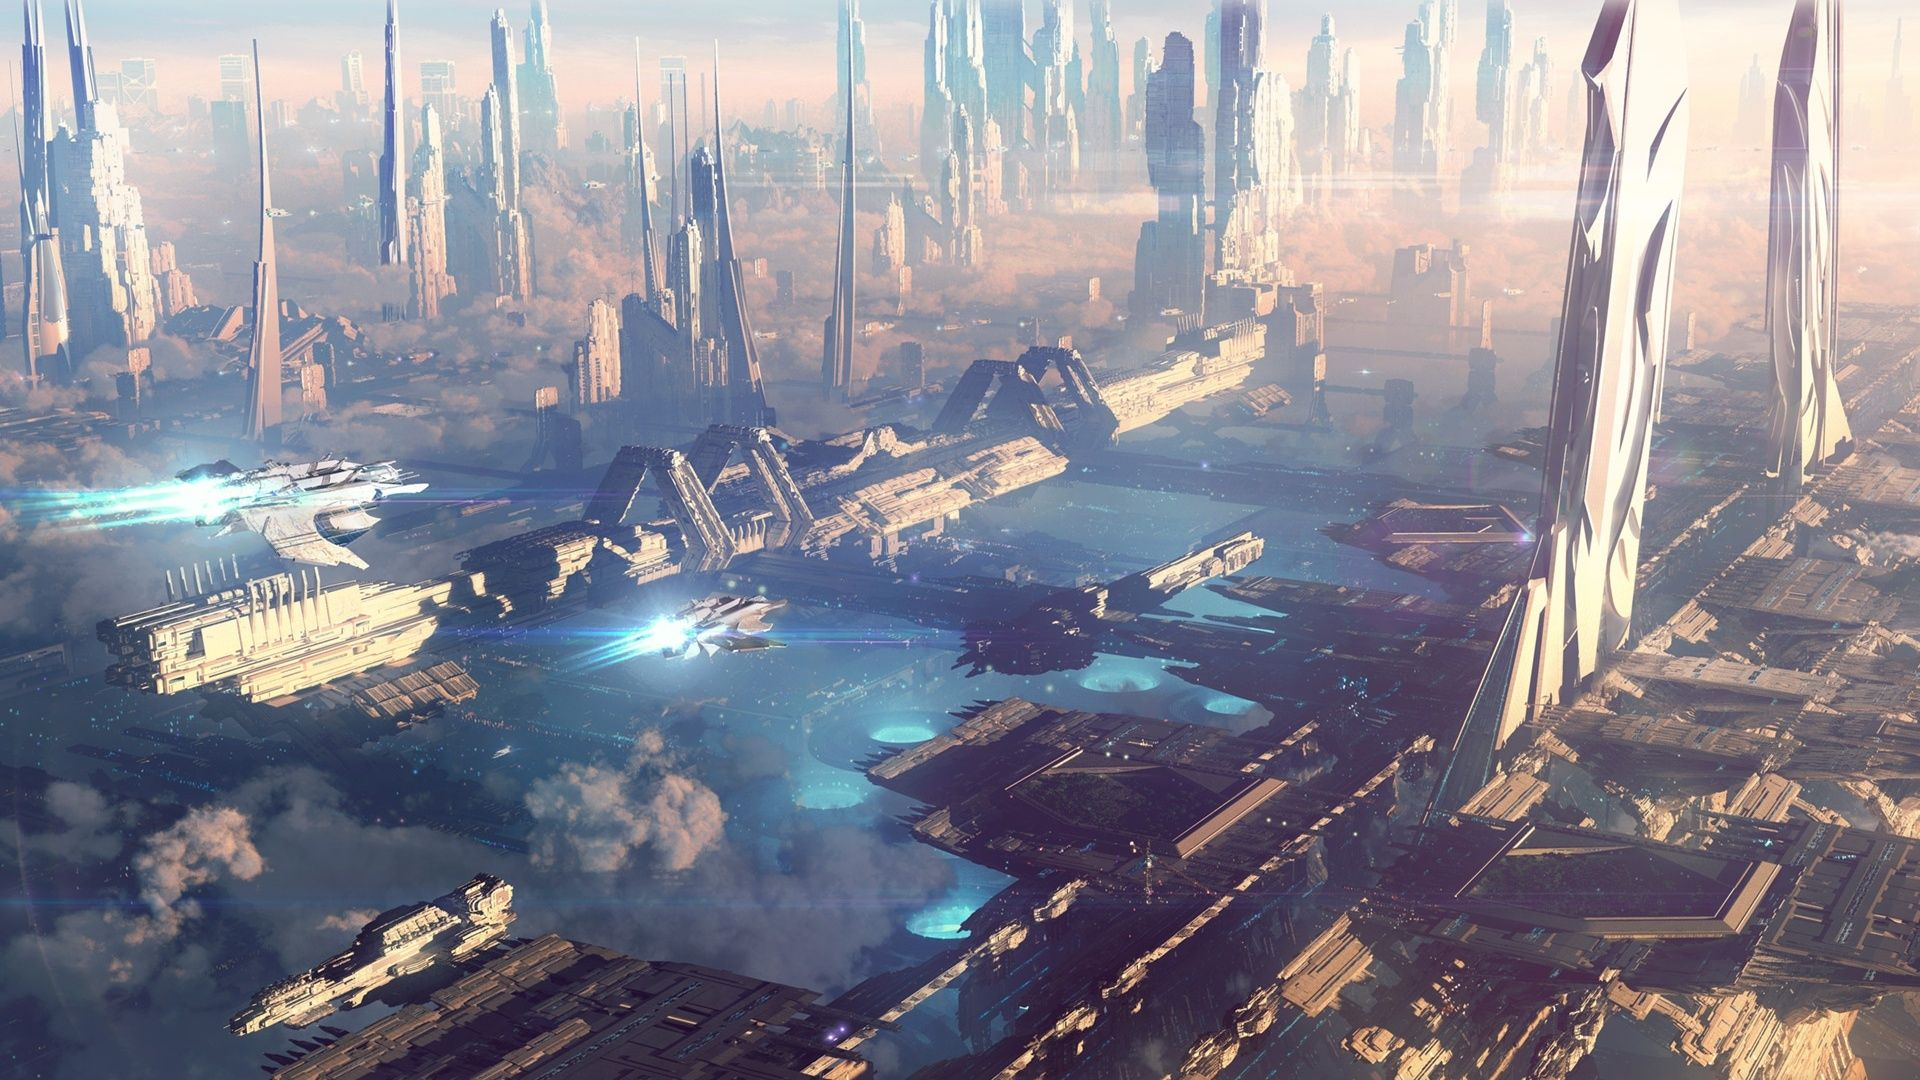 Awesome Future City Concept 1920x1080 Futuristic City Fantasy City Fantasy Landscape